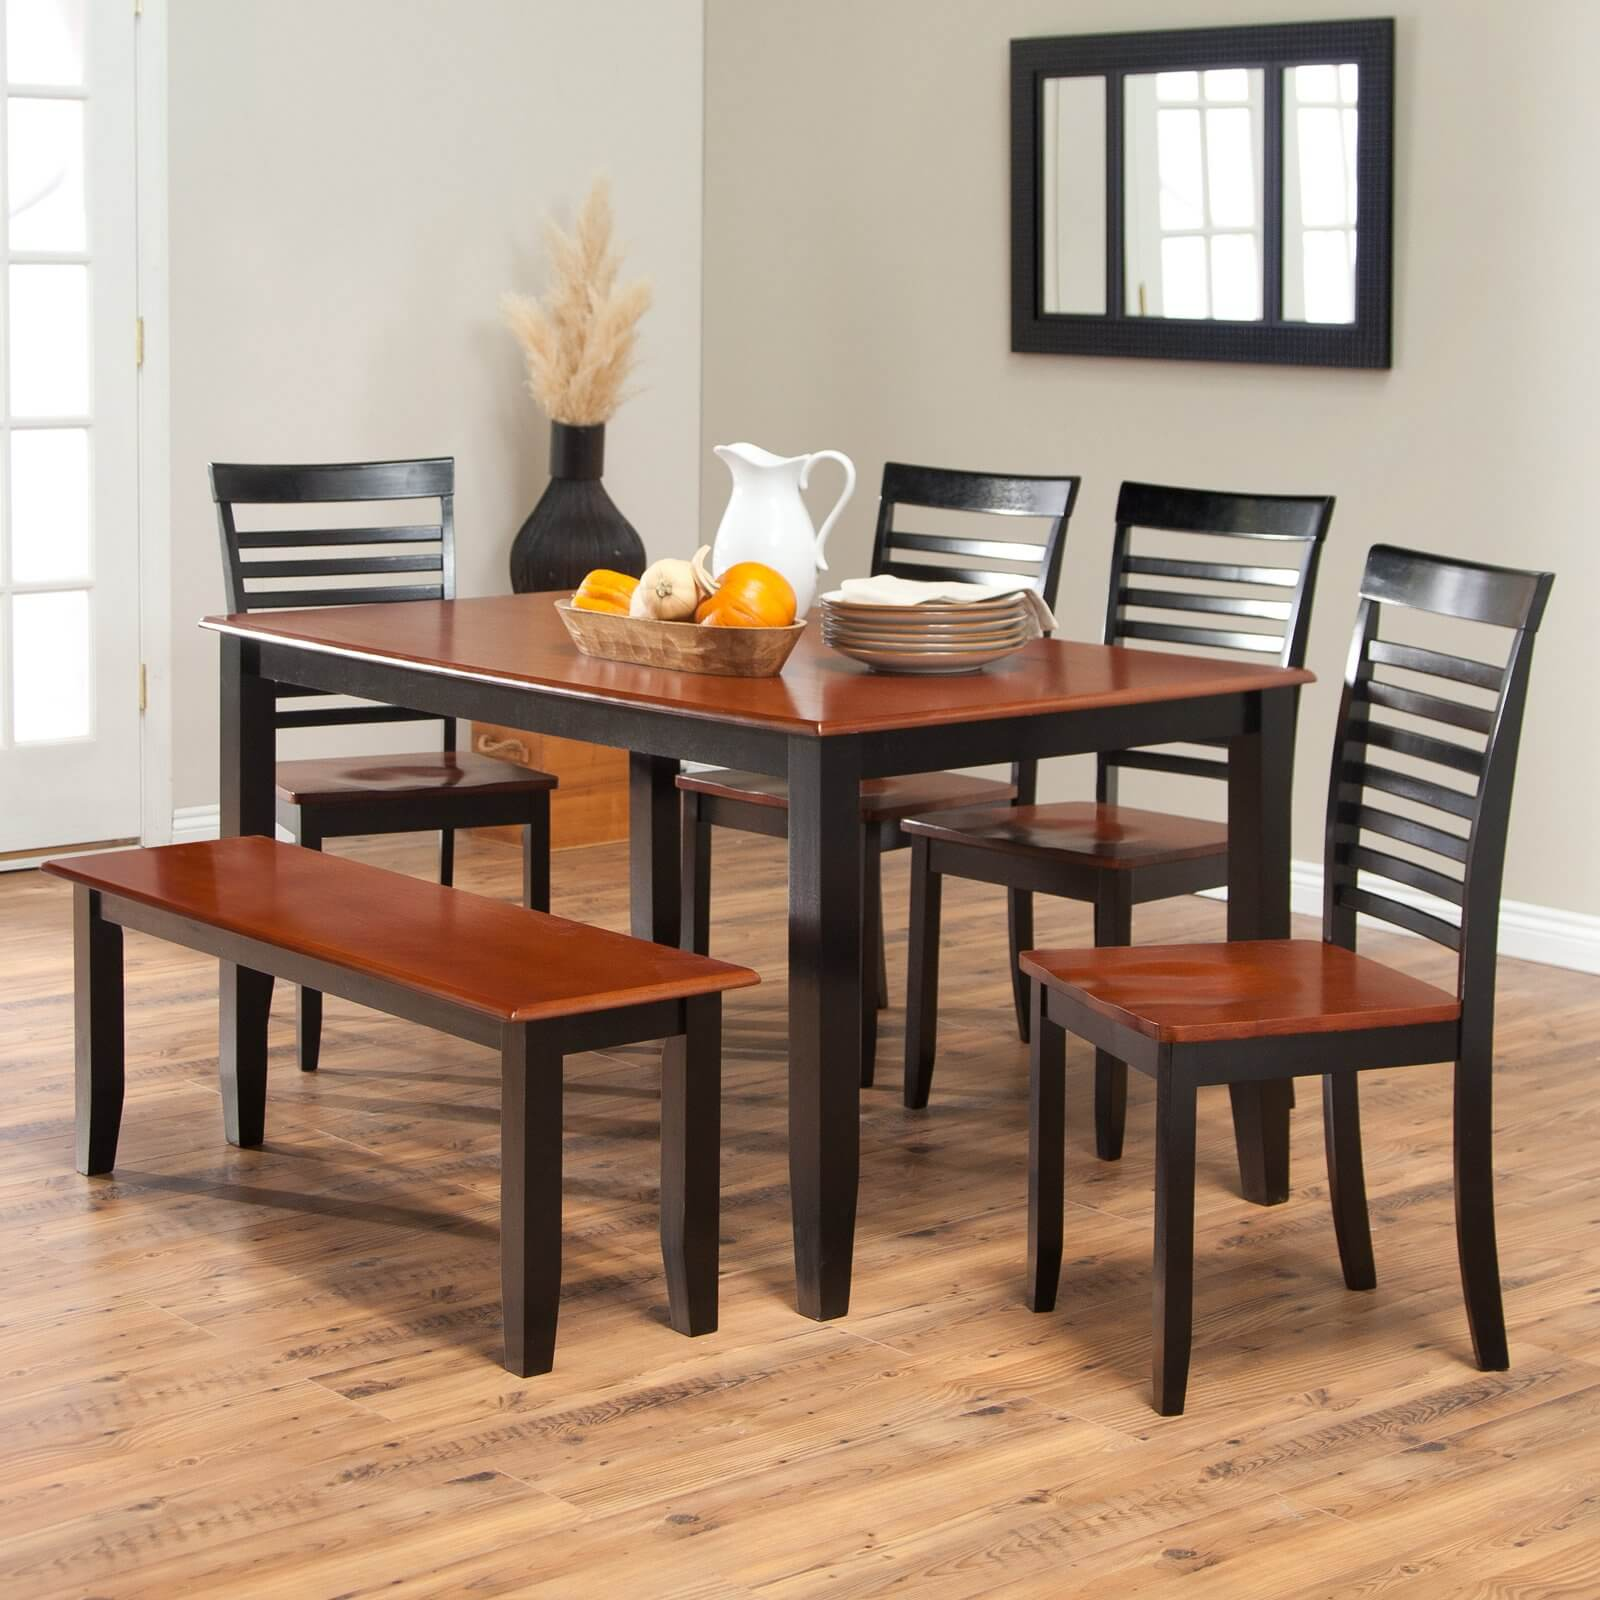 Painted Wood Dining Set